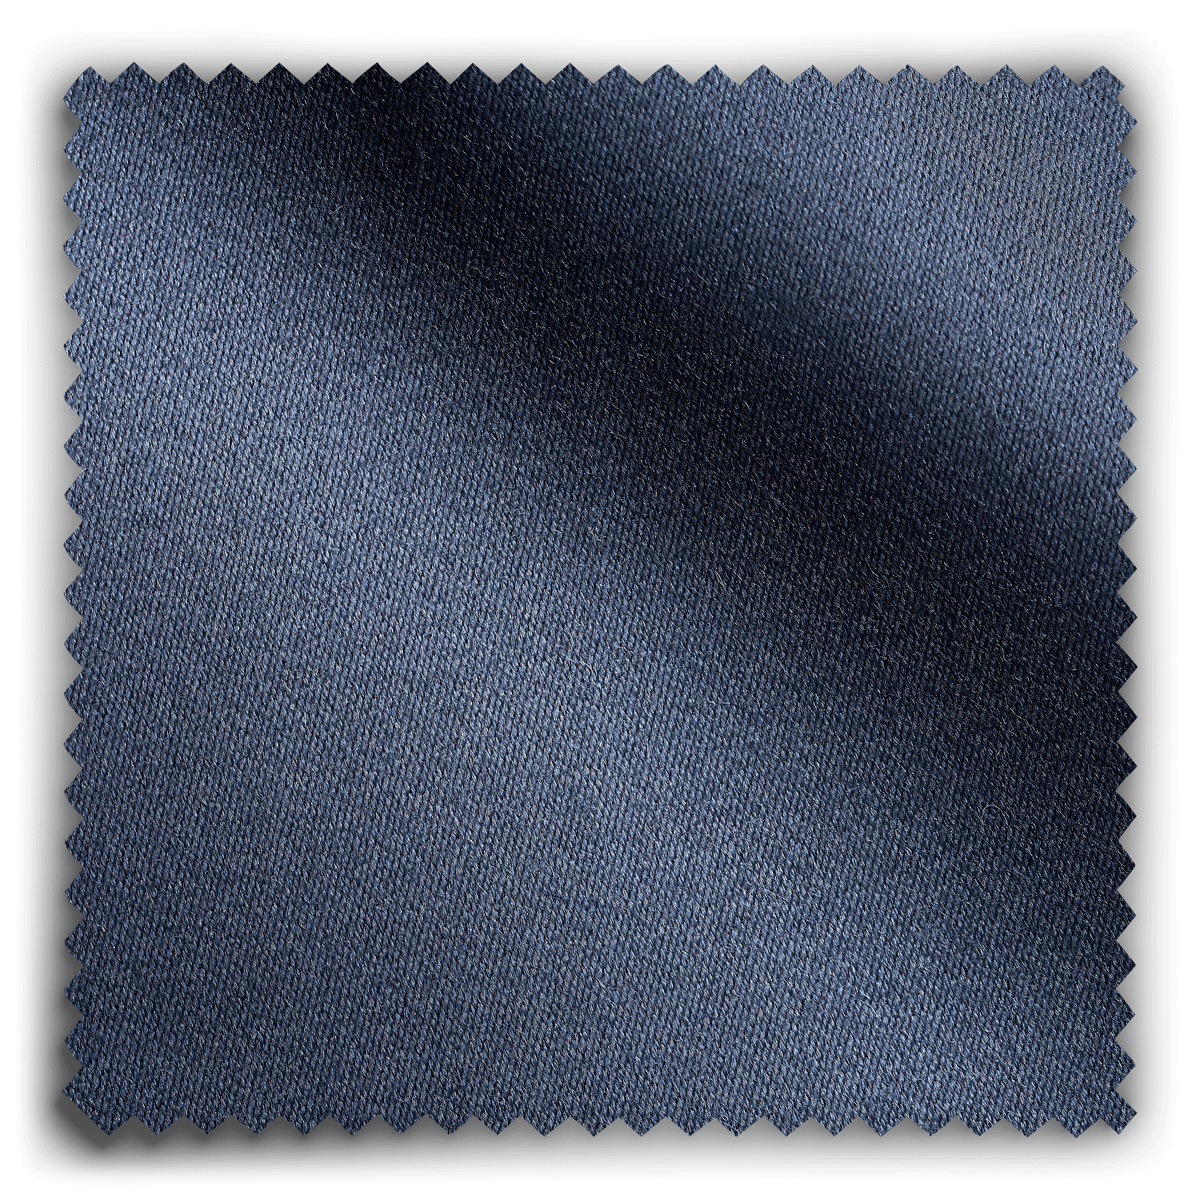 Image of Studio Wool French Navy  fabric